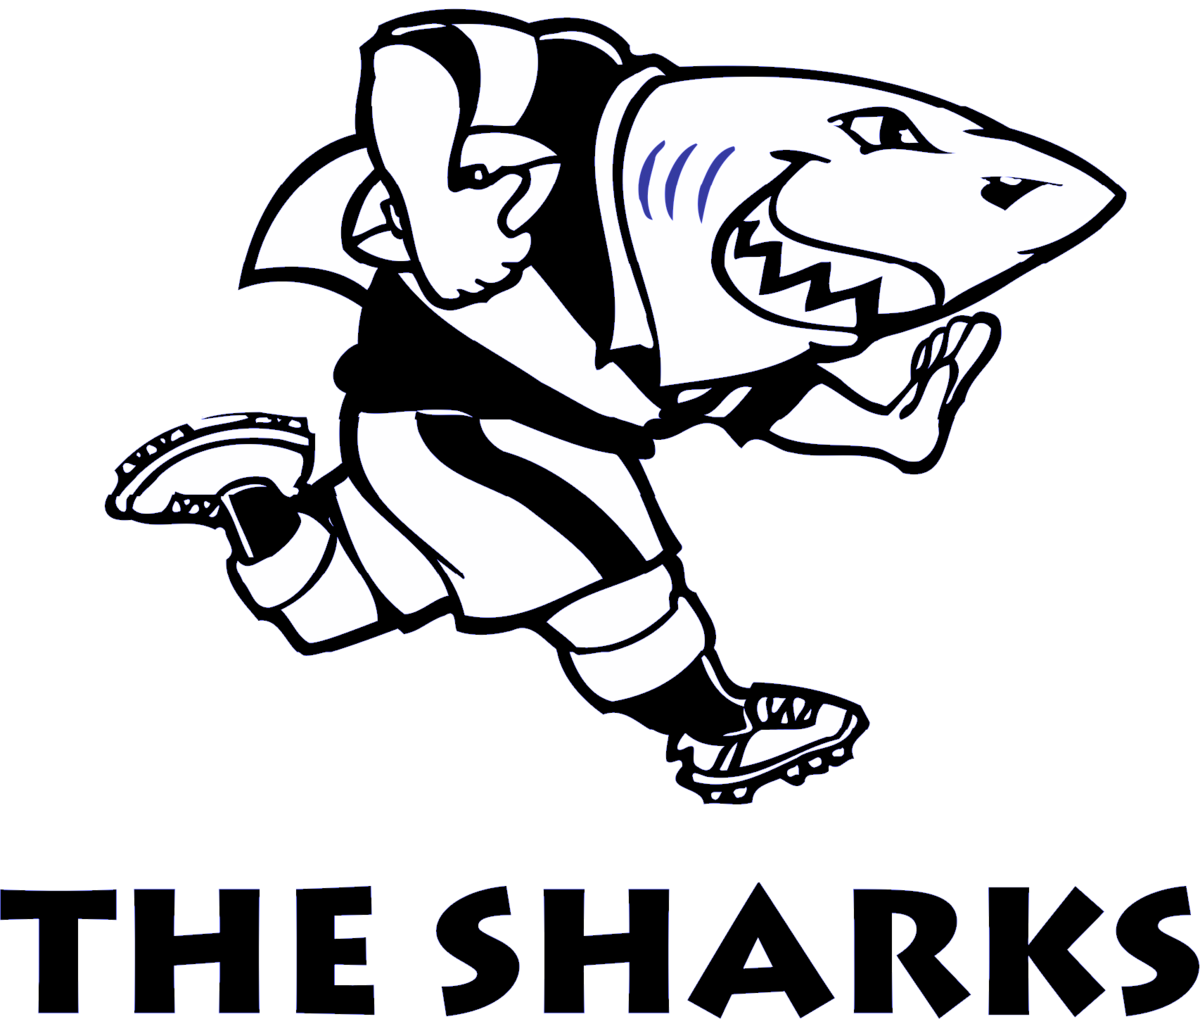 sharks rugby a 15 wikipedia